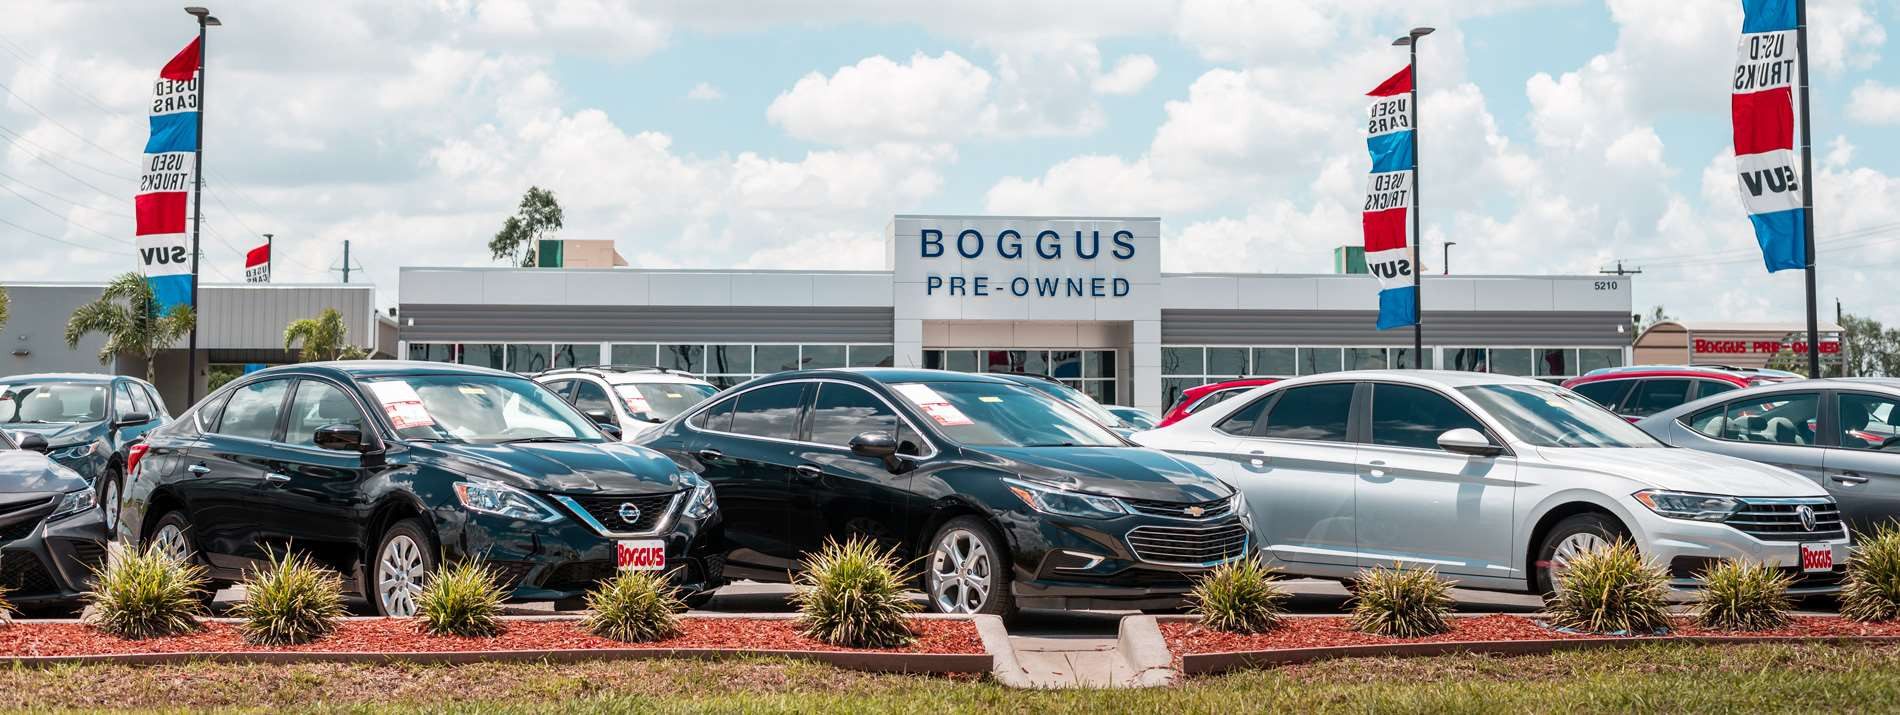 Boggus Pre-Owned Located at 5210 N Cage Blvd in Pharr Tx.